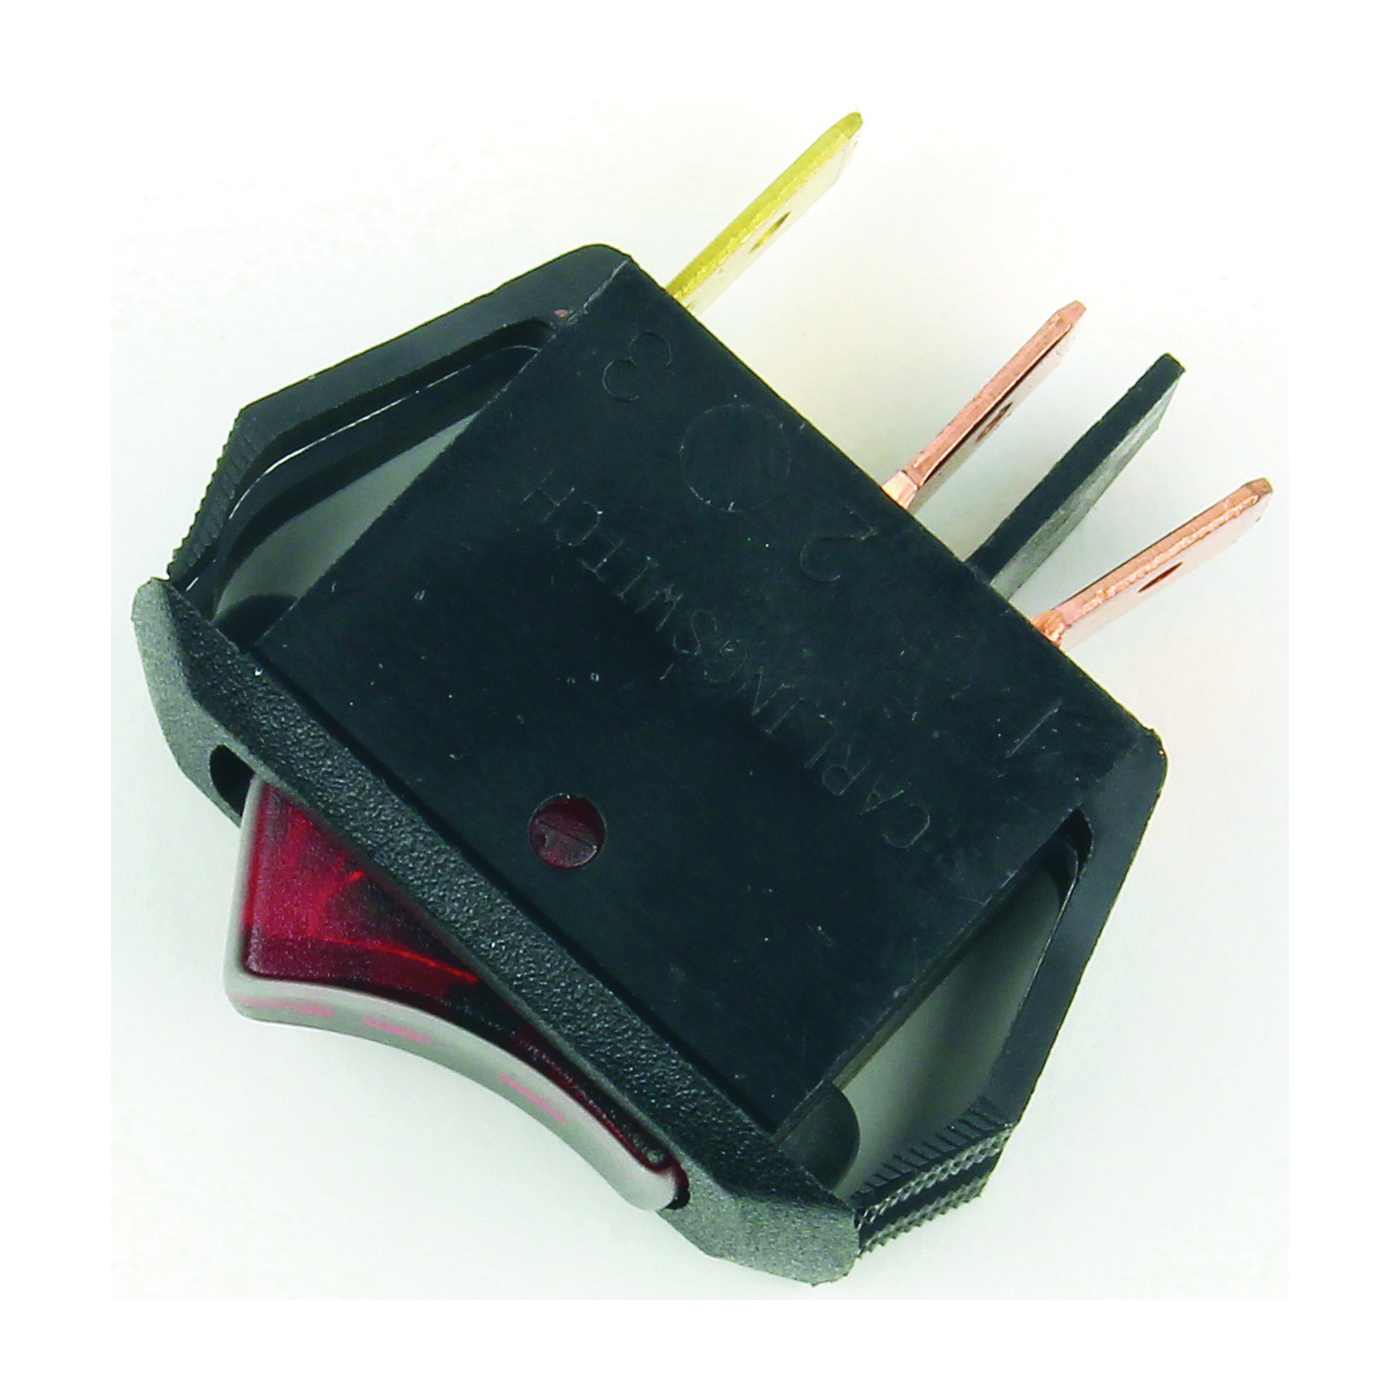 Picture of Jandorf 61038 Rocker Switch, 10 A, 30 V, SPST, Tab Terminal